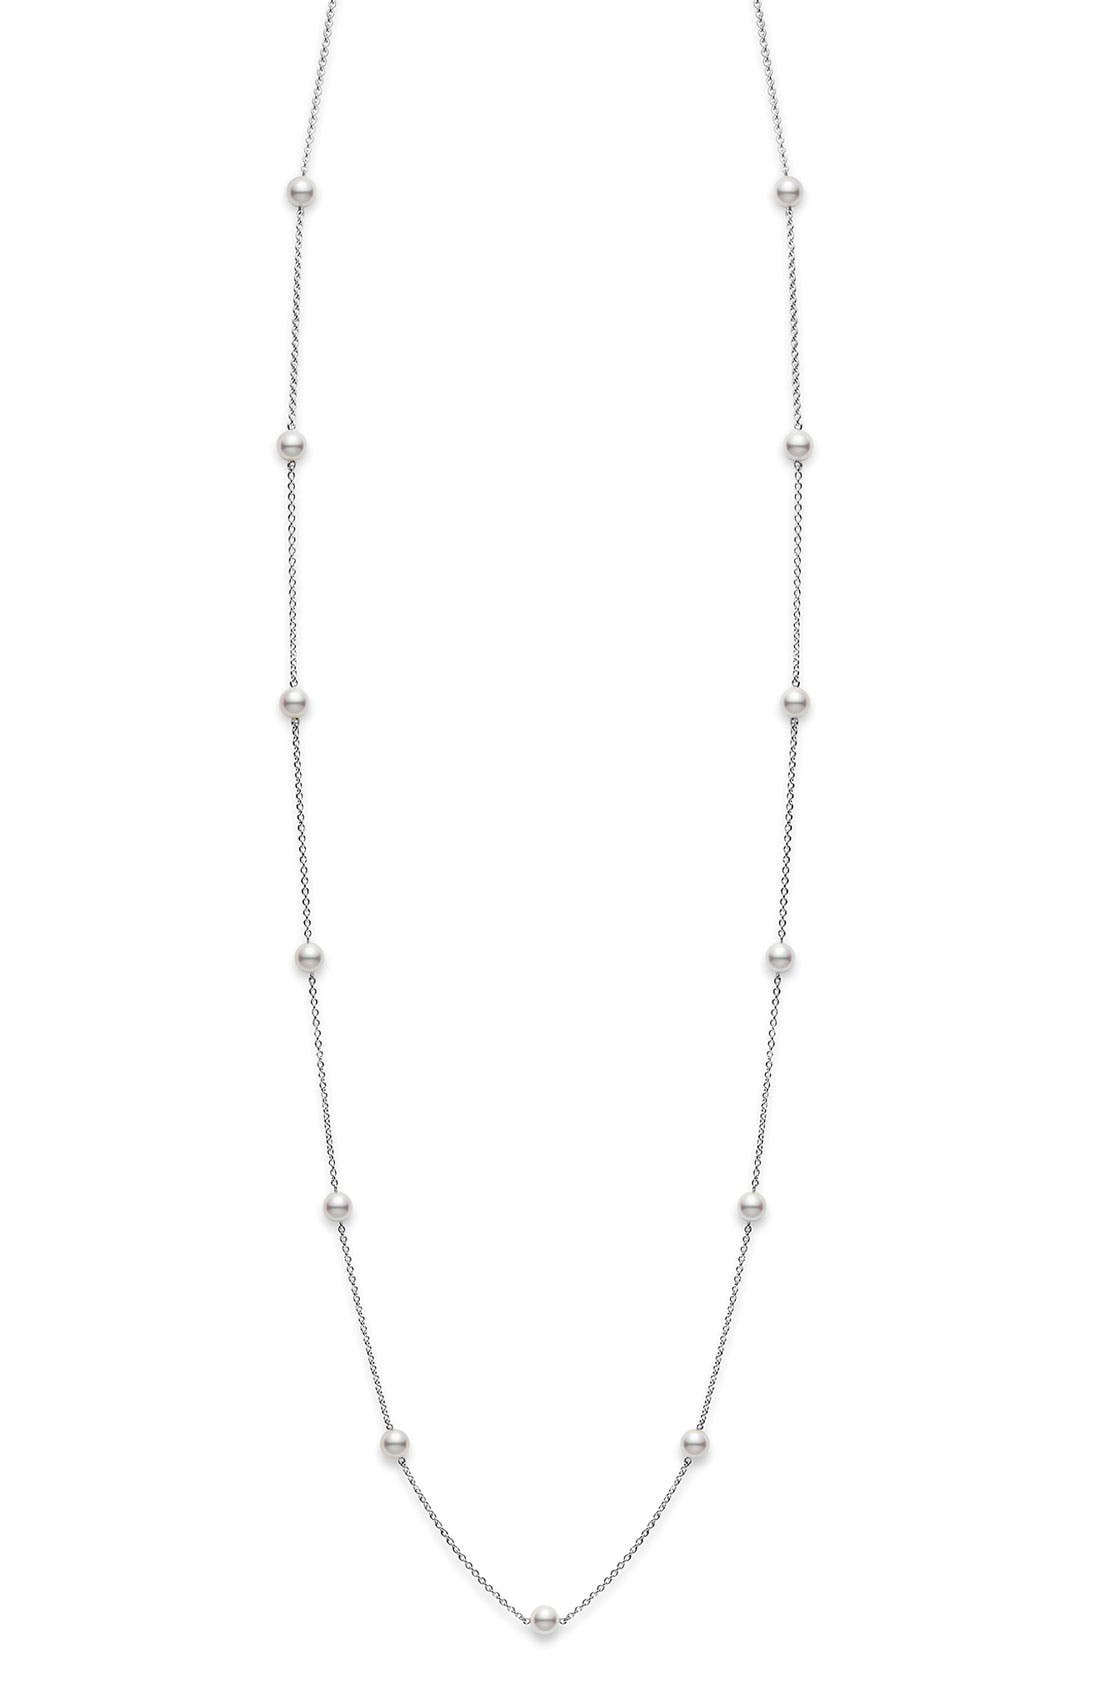 Akoya Pearl Station Necklace,                             Main thumbnail 1, color,                             WHITE GOLD